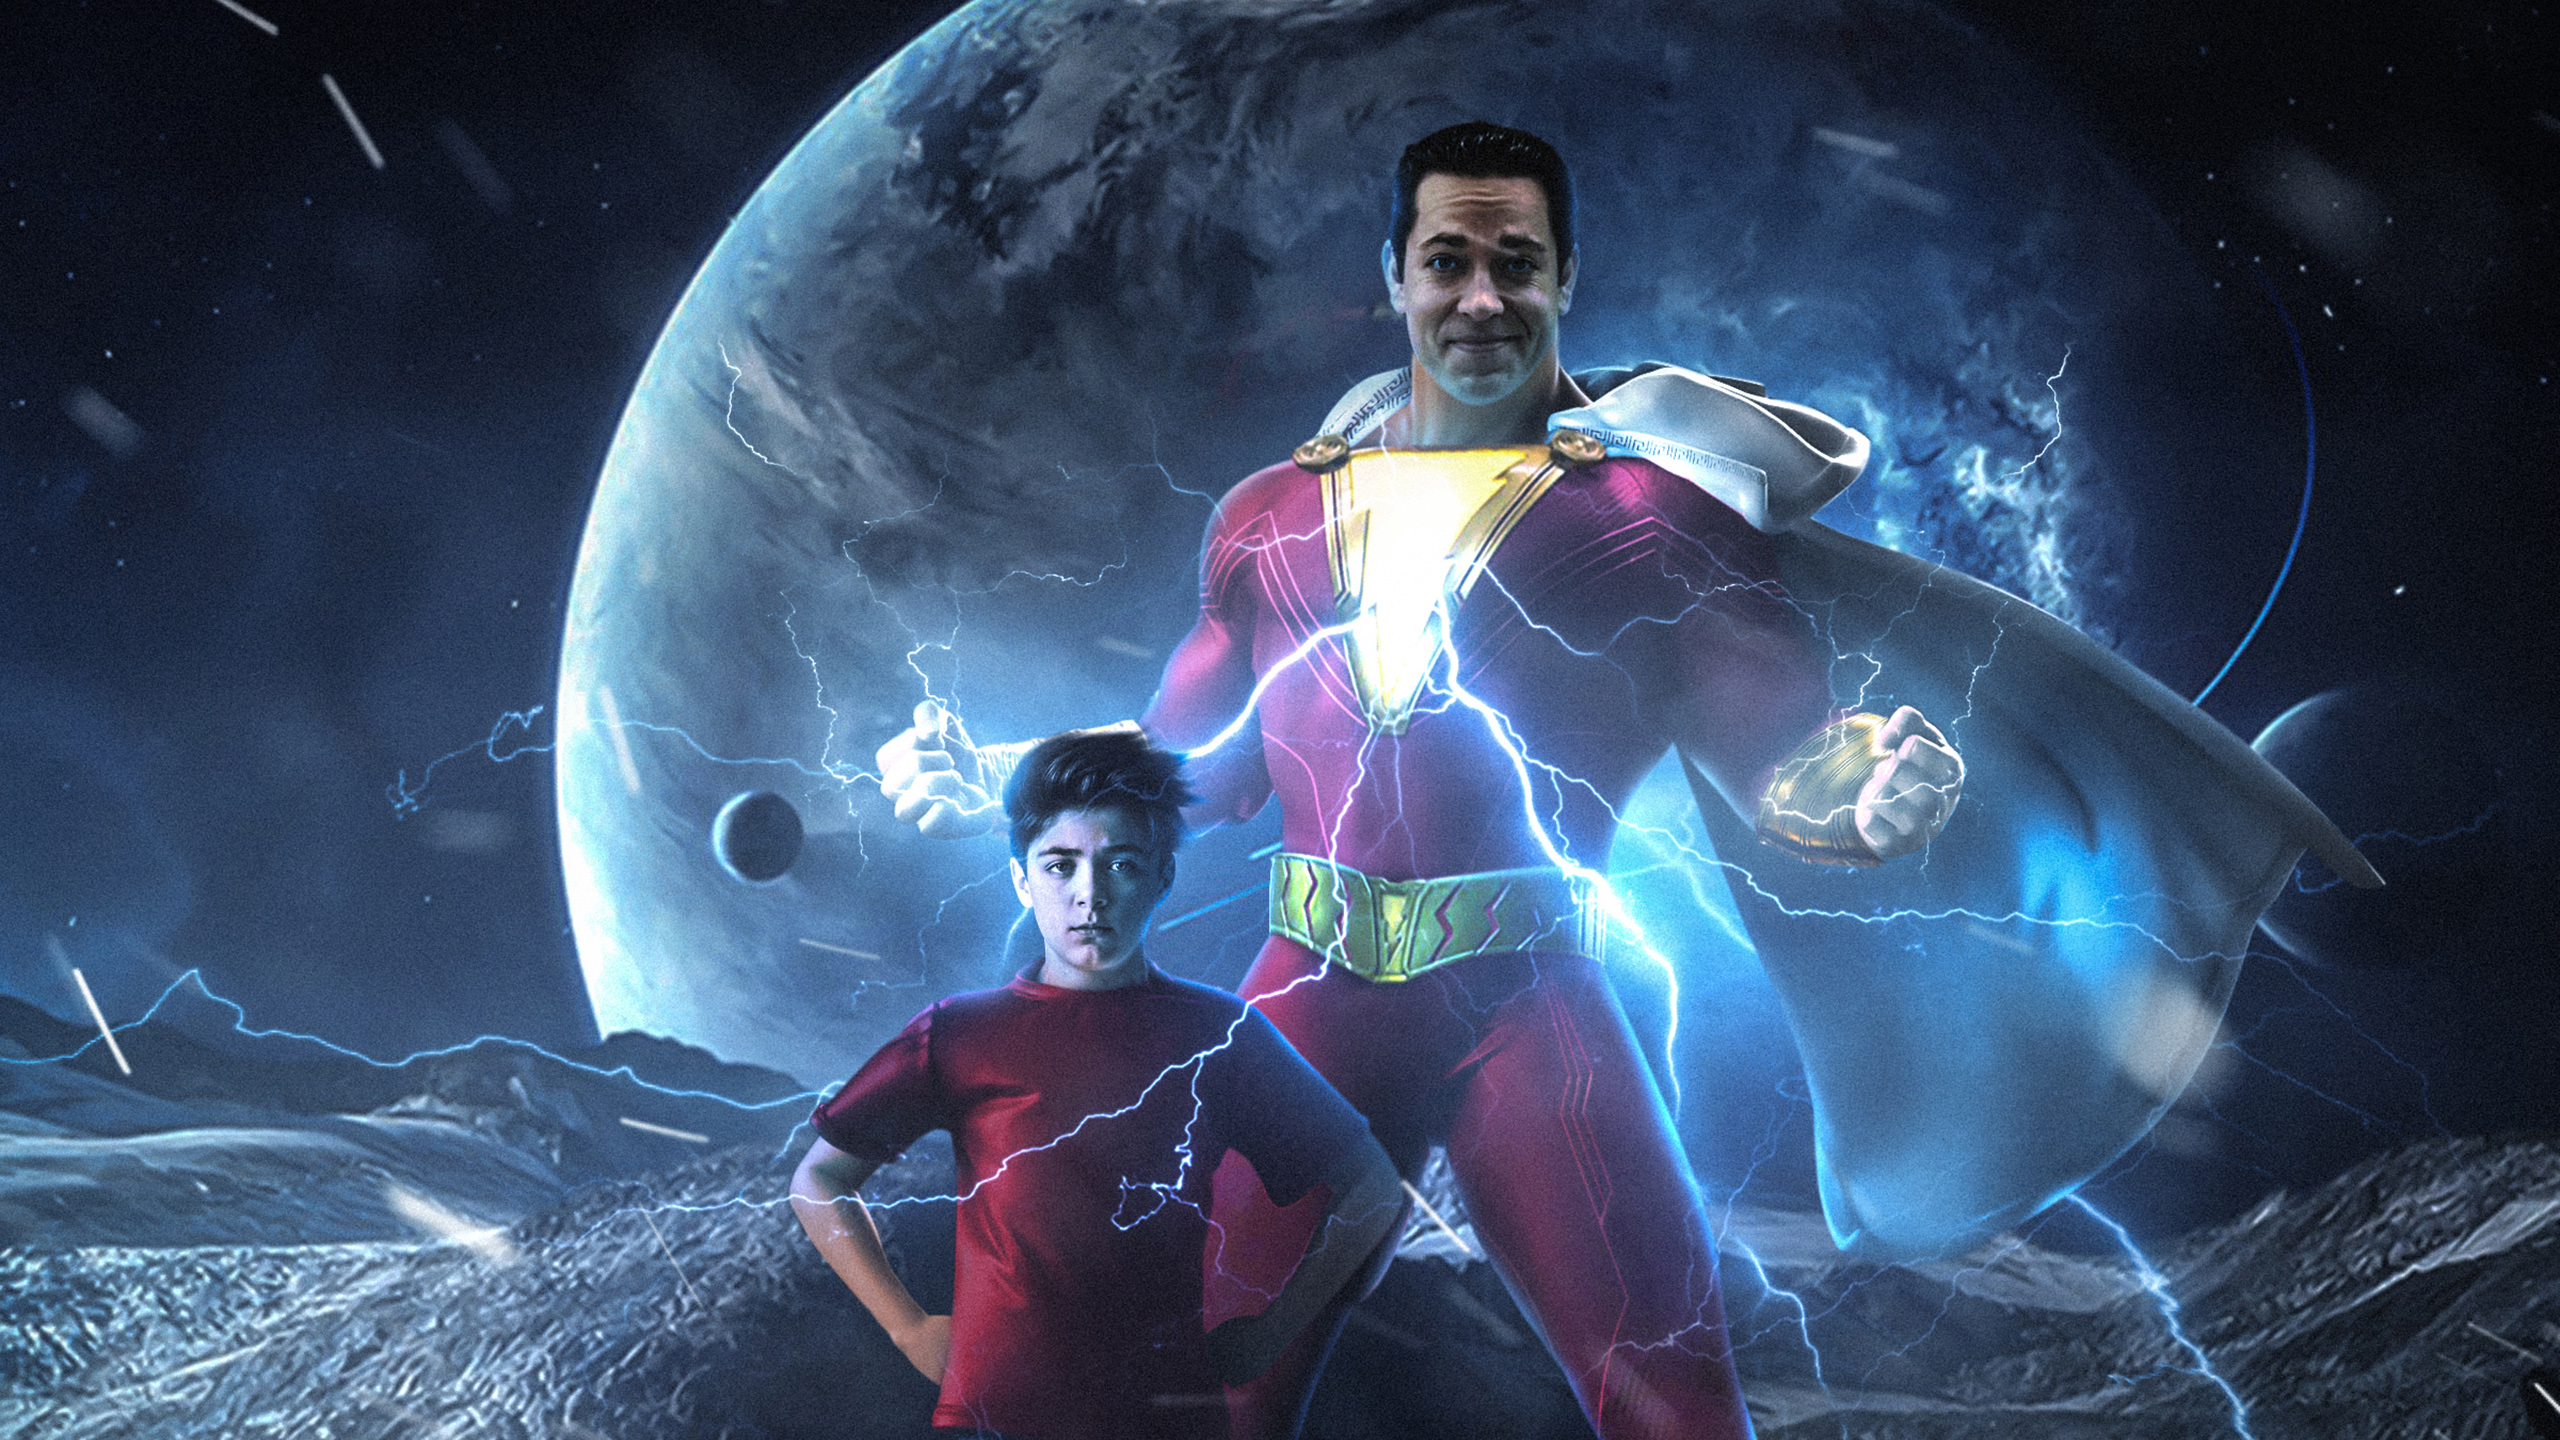 Shazam Movie Wallpapers Wallpaper Cave